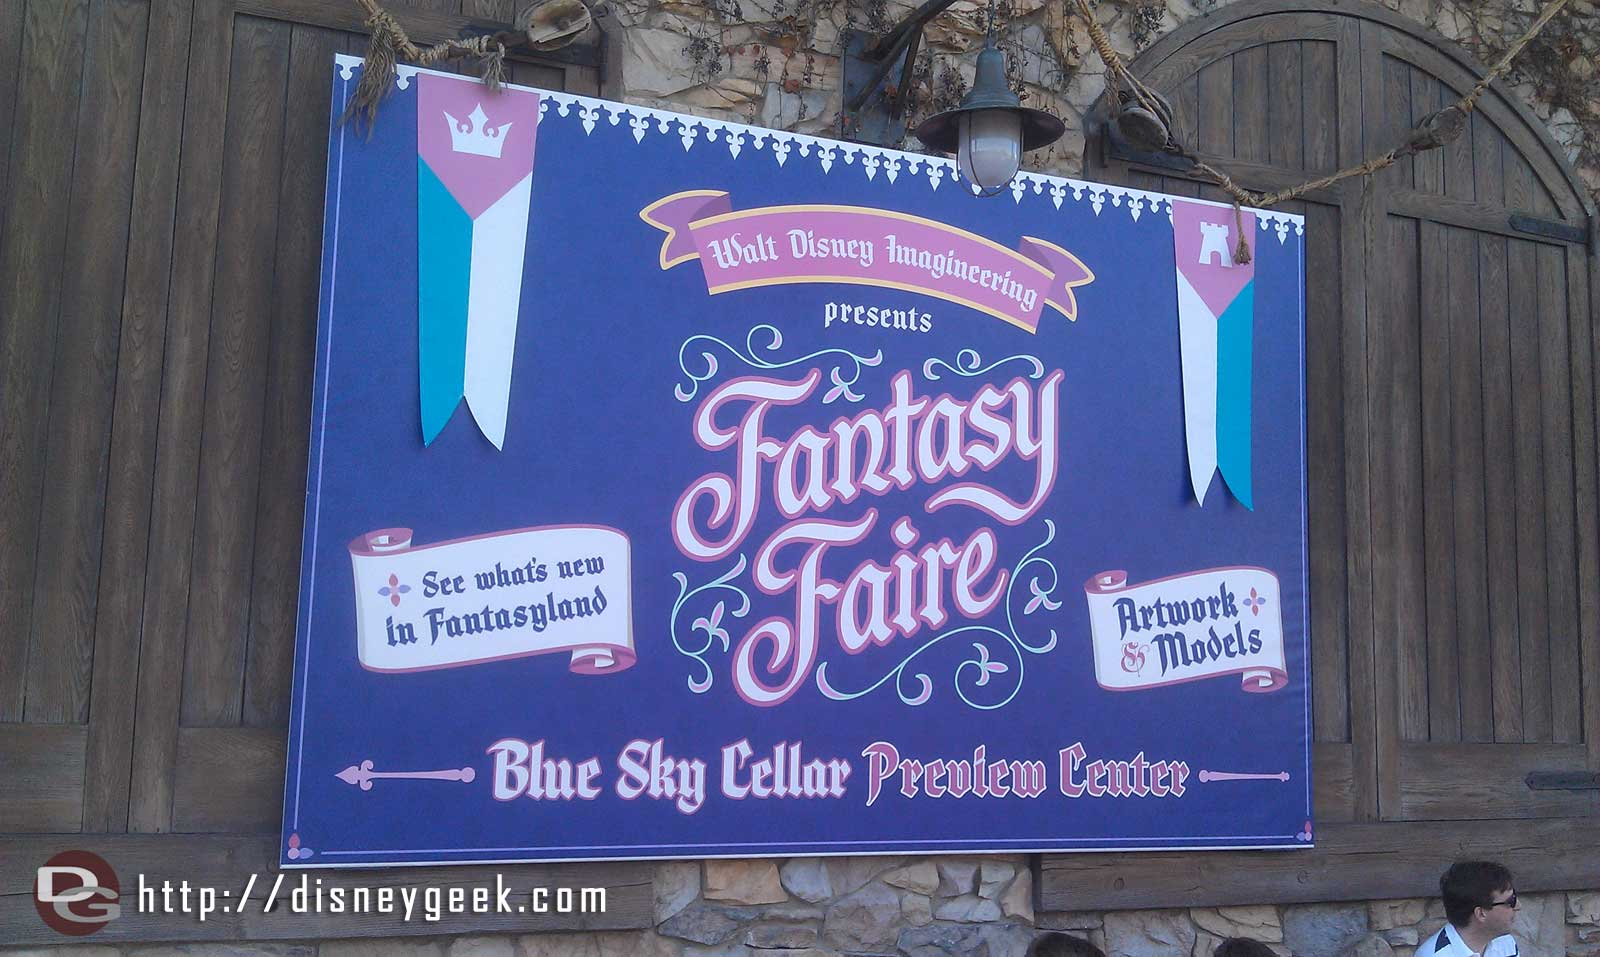 The new Blue Sky Cellar exhibit opens this weekend featuring Fantasy Faire